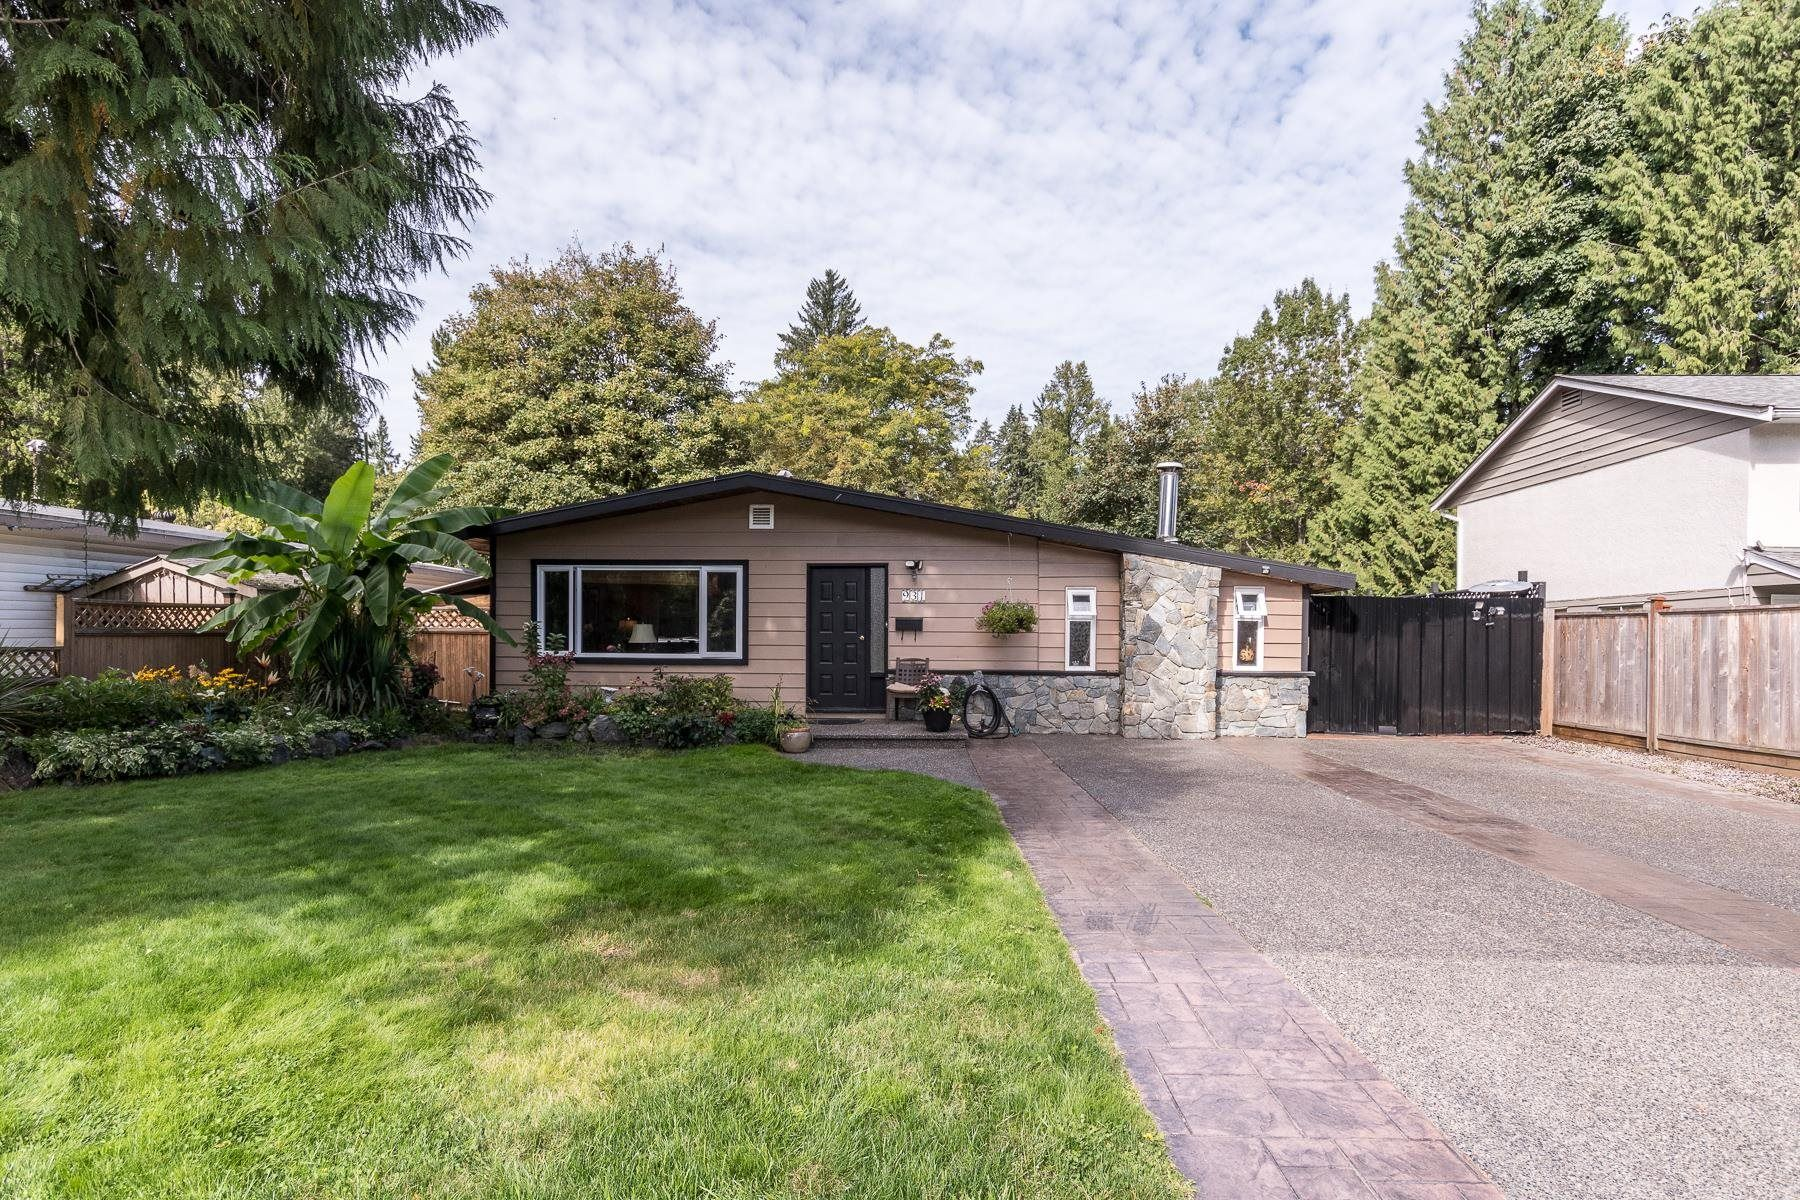 Main Photo: 931 RAYMOND Avenue in Port Coquitlam: Lincoln Park PQ House for sale : MLS®# R2622296